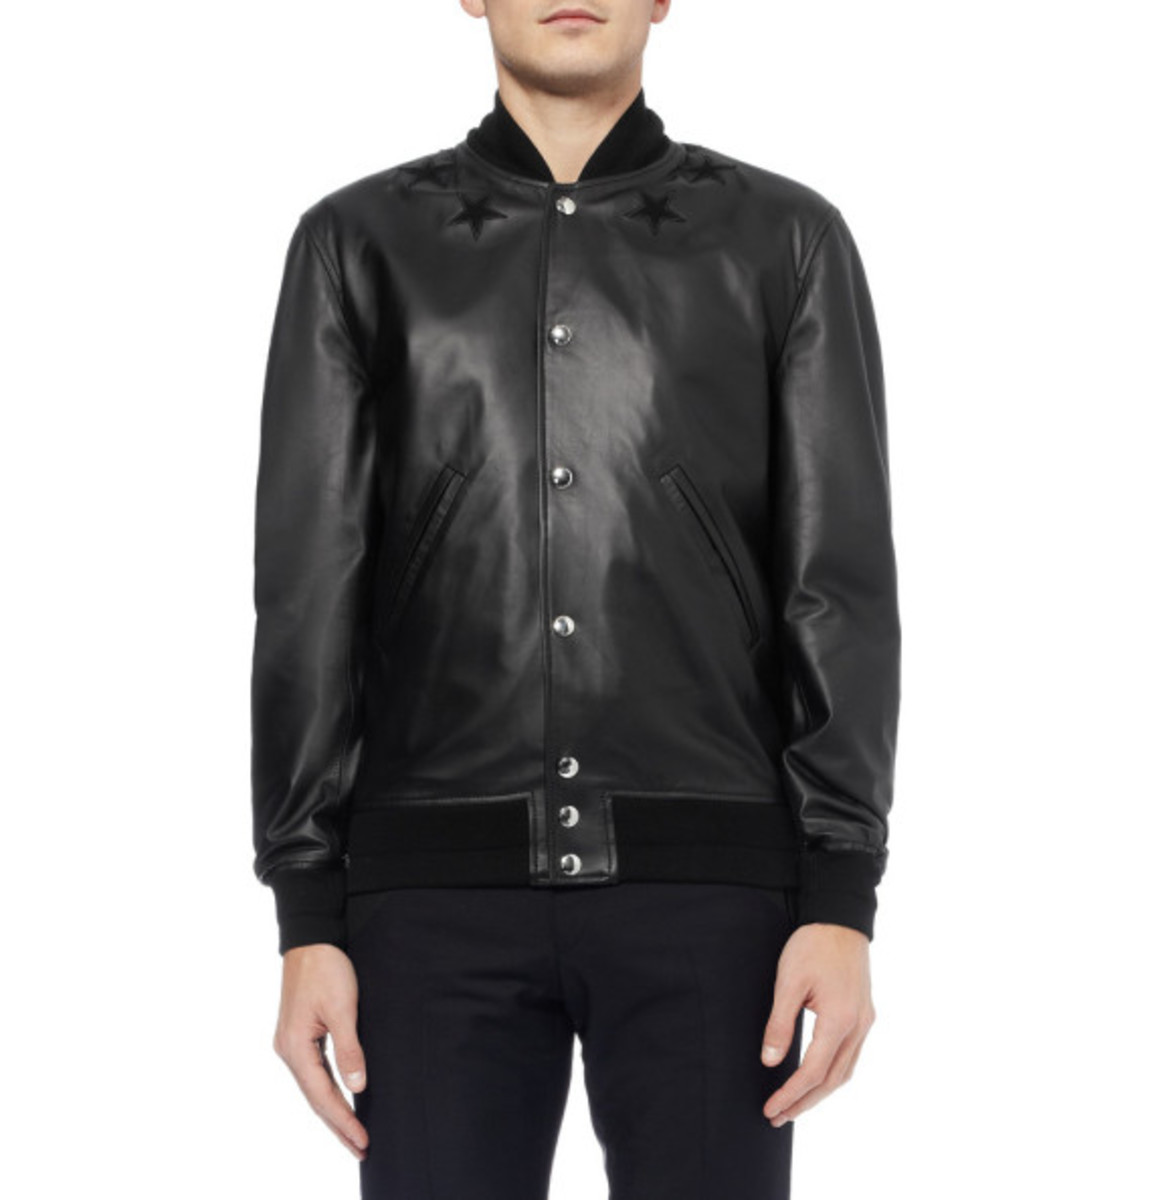 givenchy-leather-embroidered-star-baseball-jacket-02